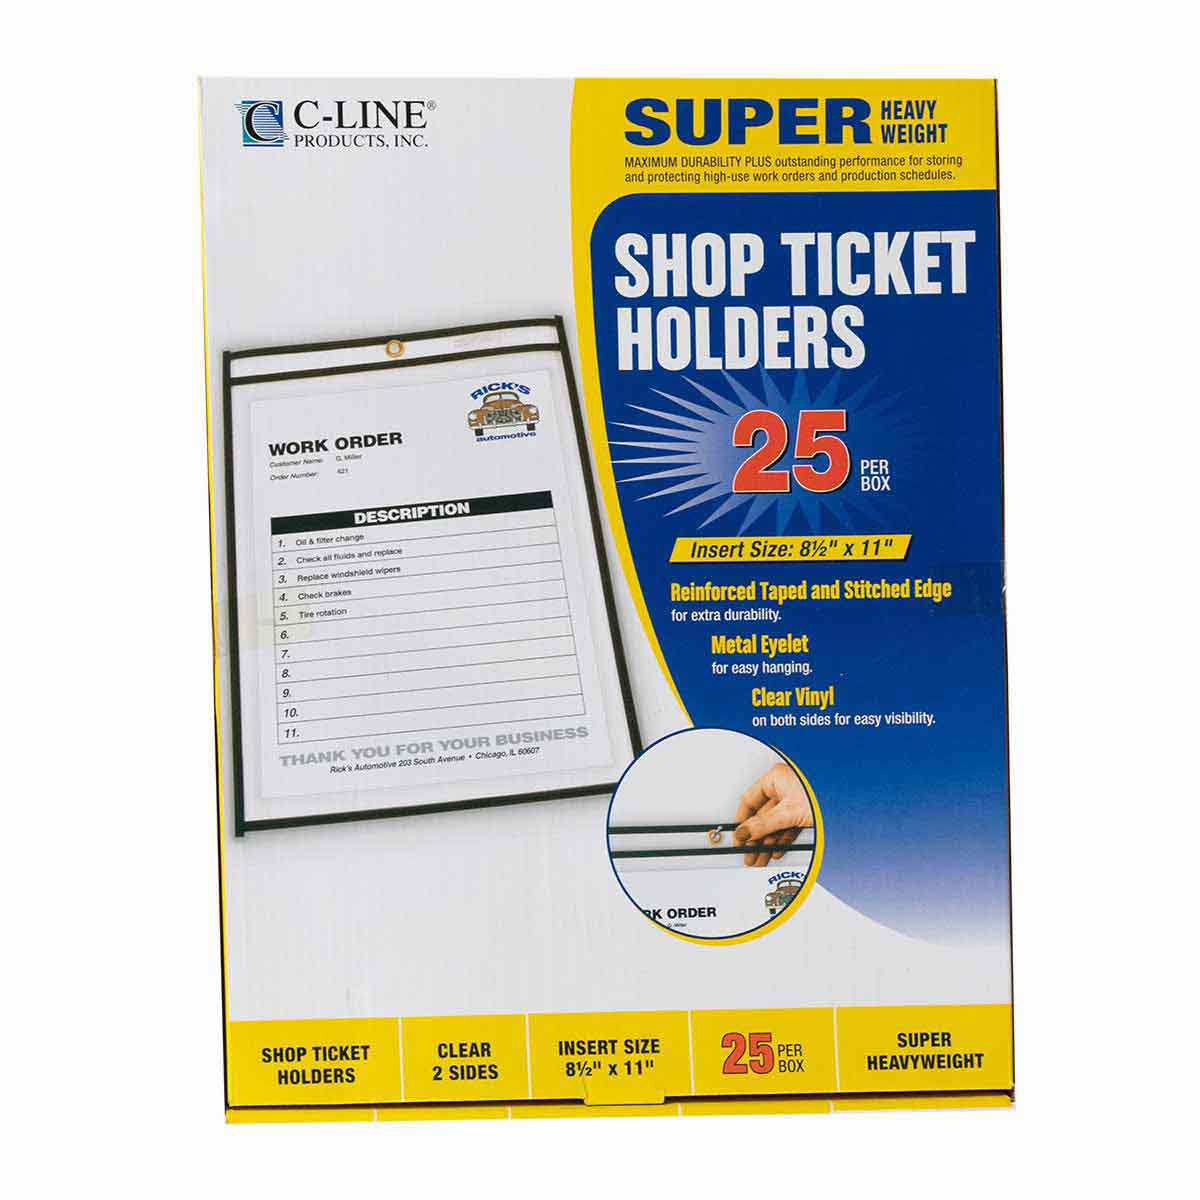 C-Line Shop Ticket Holders Box of 25 8.5 inches by 11 inches